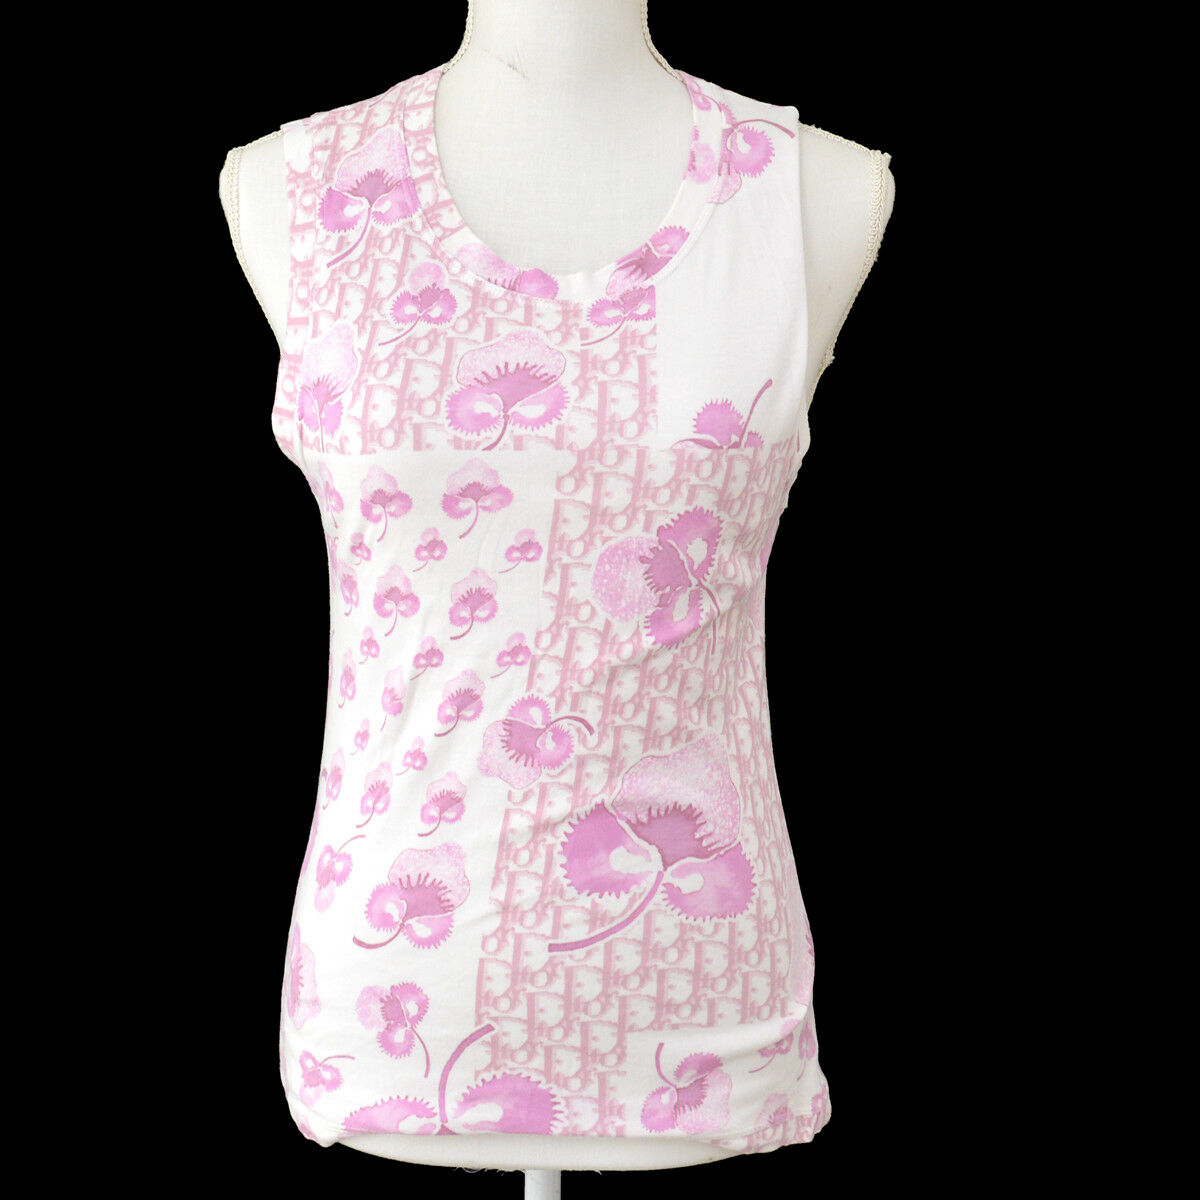 Authentic Christian Dior Vintage Sleeveless Shirt Tops Pink White AK25357